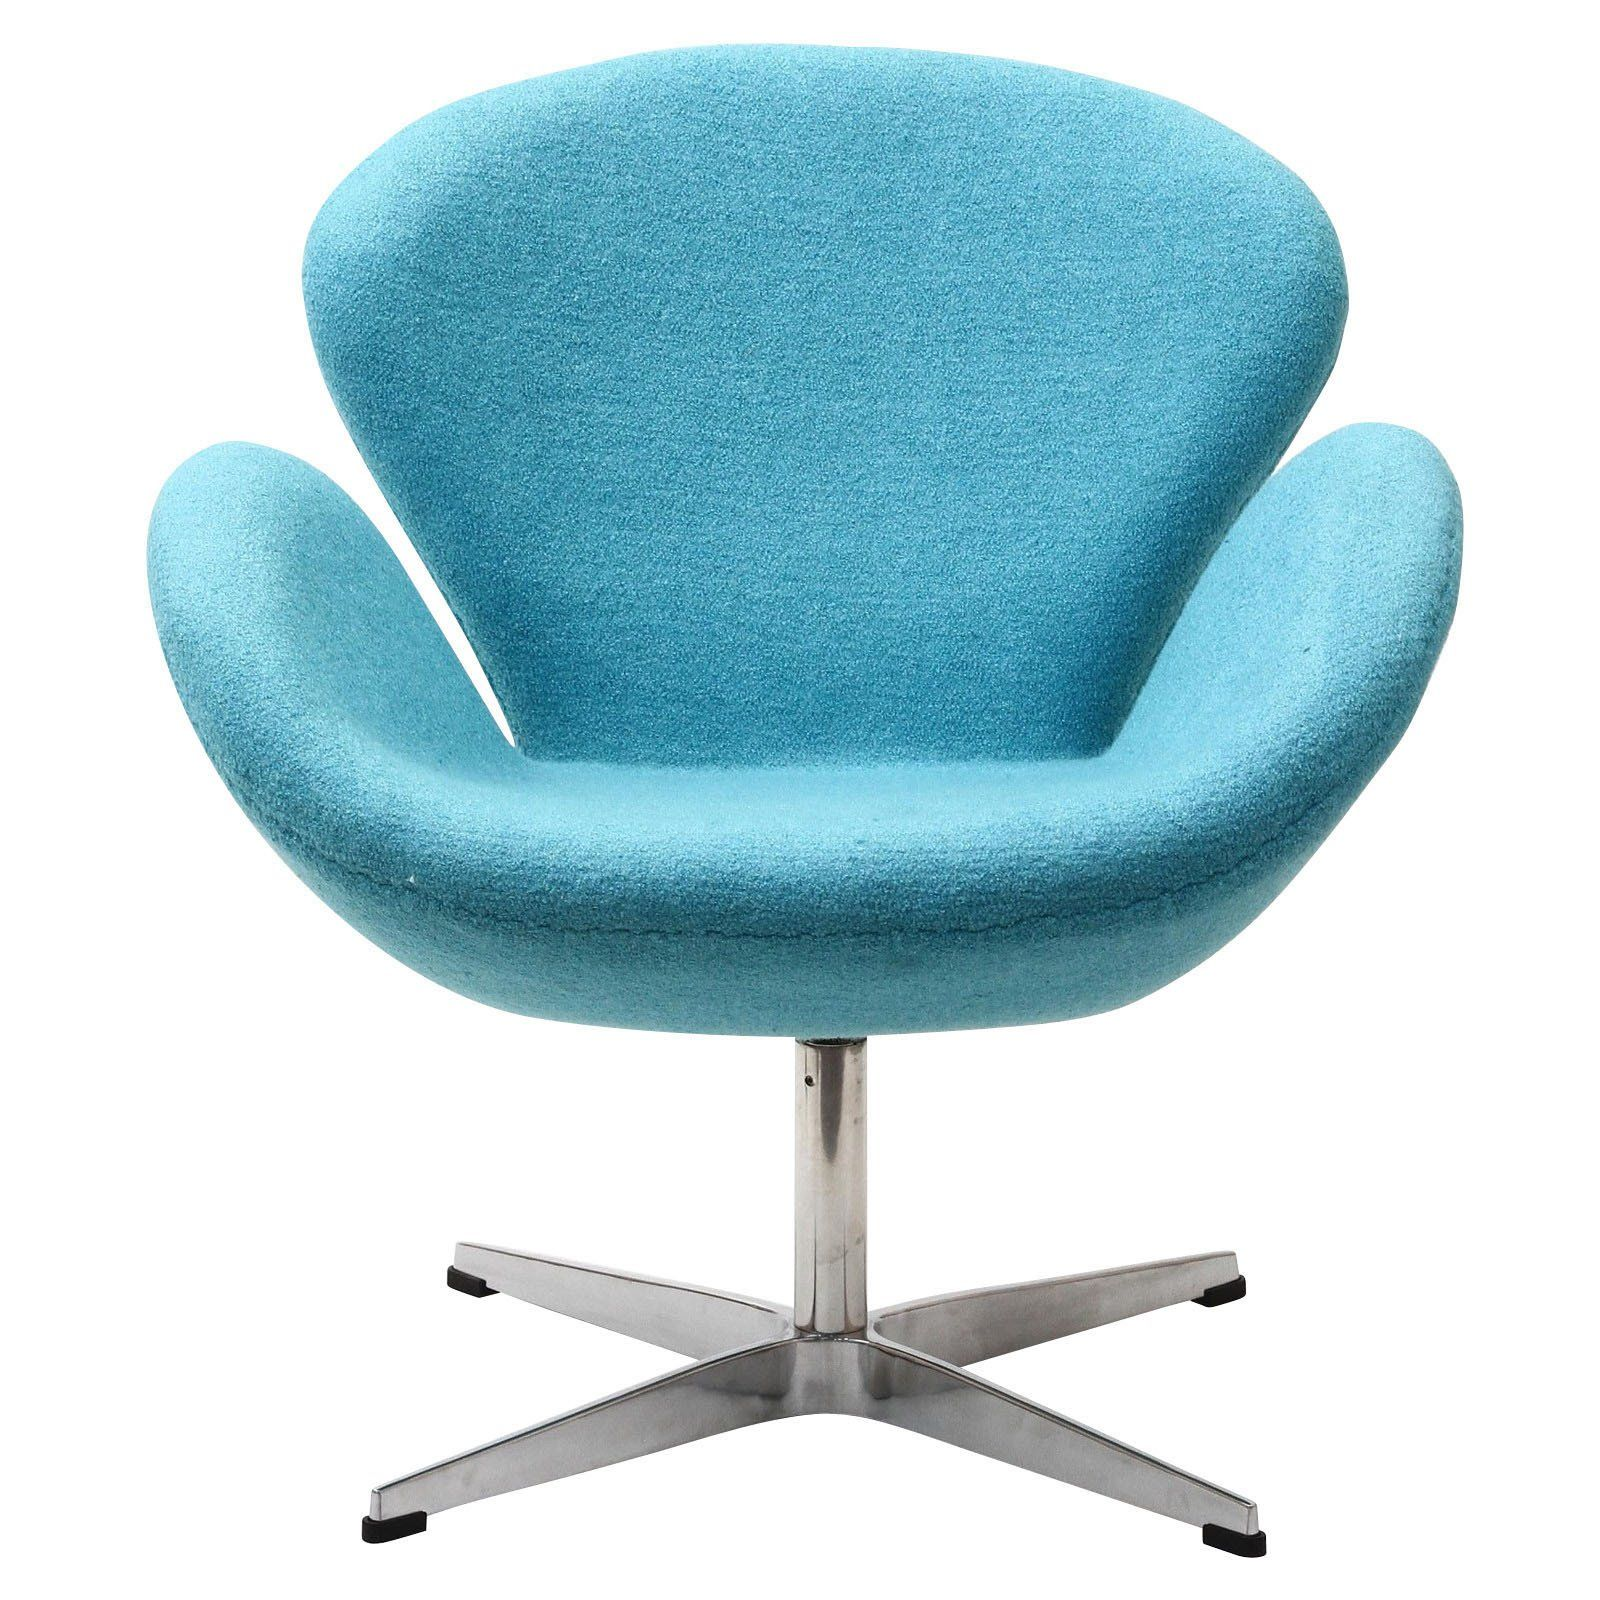 Modway furniture modern wing lounge chair eei products